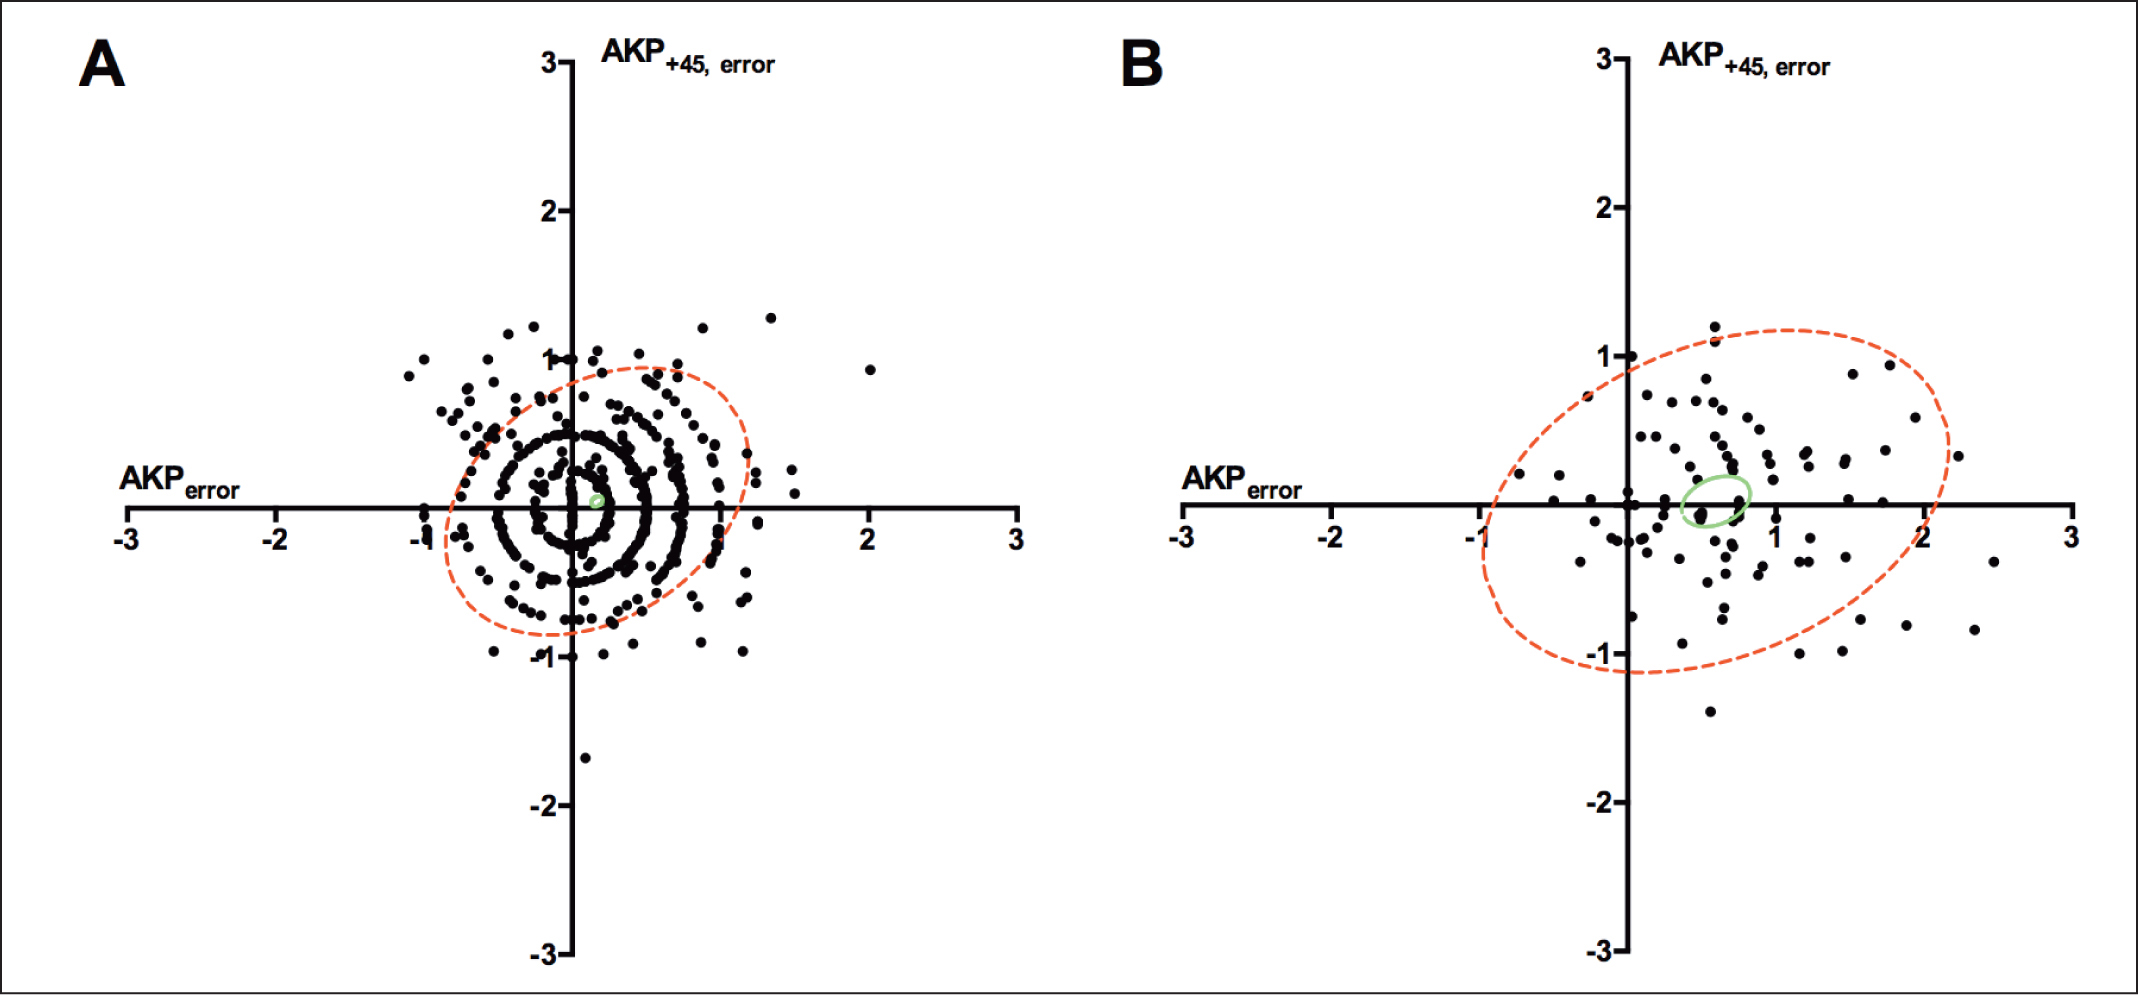 Bivariate representation of the error of treatment in (A) low and (B) high astigmatic eyes. AKPerror indicates the error of treatment at the main meridian (positive values representing the amount of undercorrection). ΔAKP+45 indicates the induced astigmatism at a 45° oblique meridian; representing the amount of torsion or rotation of the cylinder axis. Confidence ellipses comprising 95% of the observations are given for individual samples (dashed red) and for the combined mean (solid green); the ellipses being equivalent to the standard variation, respectively the standard error of mean in a univariate analysis. The dimensions of the confidence ellipses indicate the relative inaccuracy of the treatments. The statistical significance may be read directly from the figure, with the combined mean errors being significantly different from zero, as the origin is not included in the confidence ellipses (solid green). All values are given in diopters.